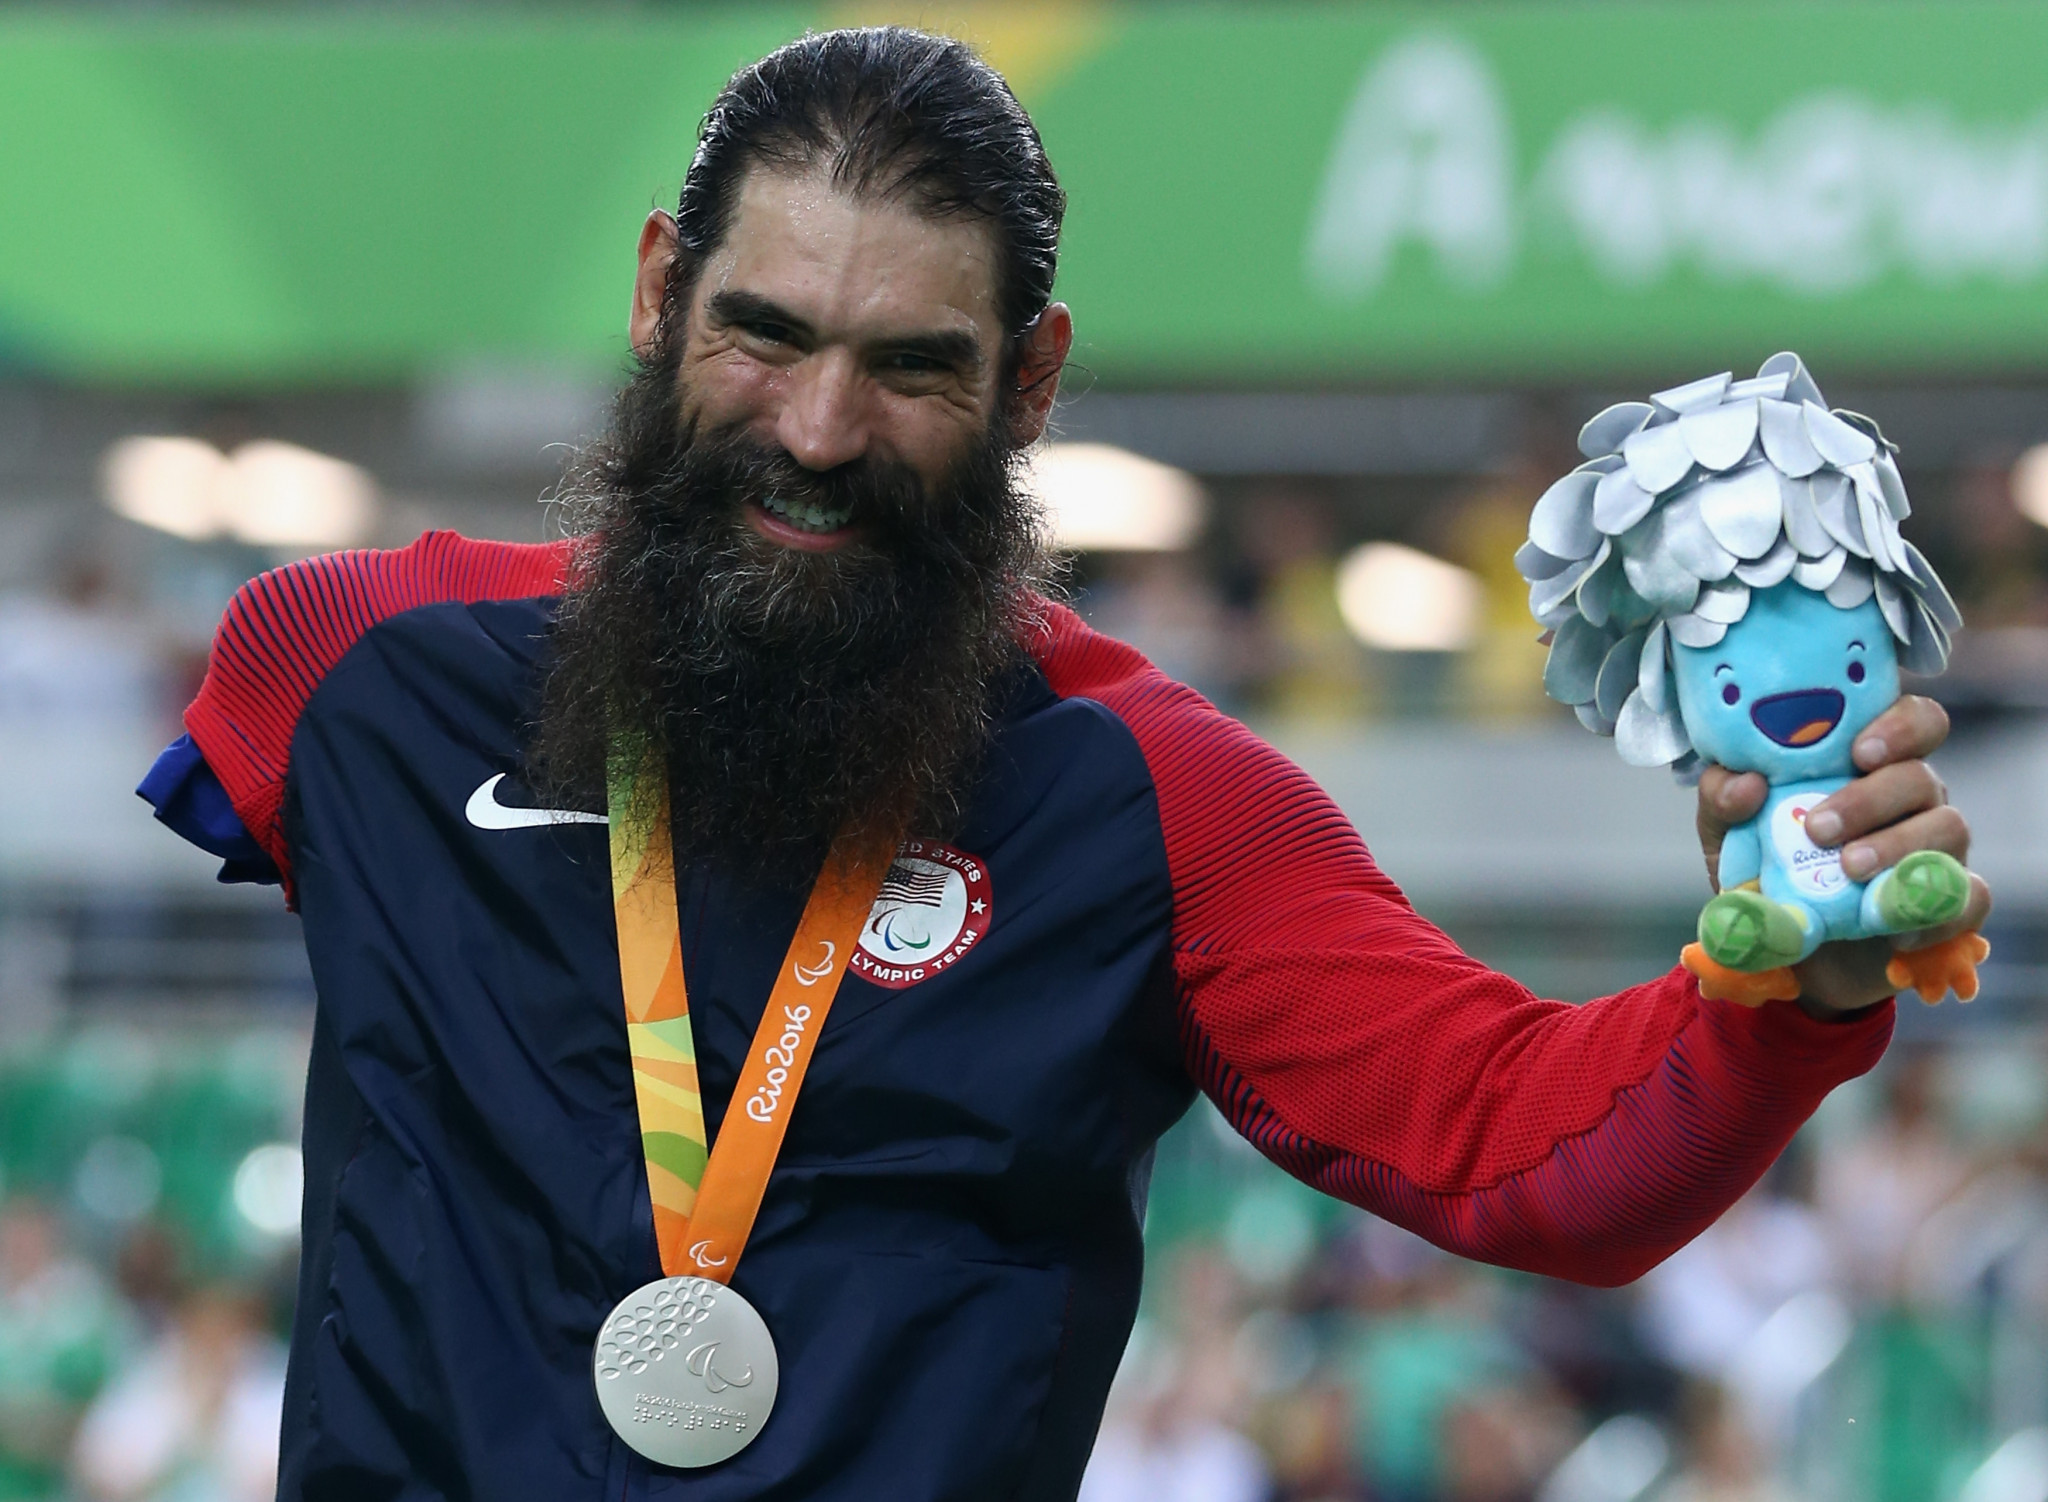 Paralympic medallists Berenyi and Campbell named on 257-strong US team for Parapan American Games